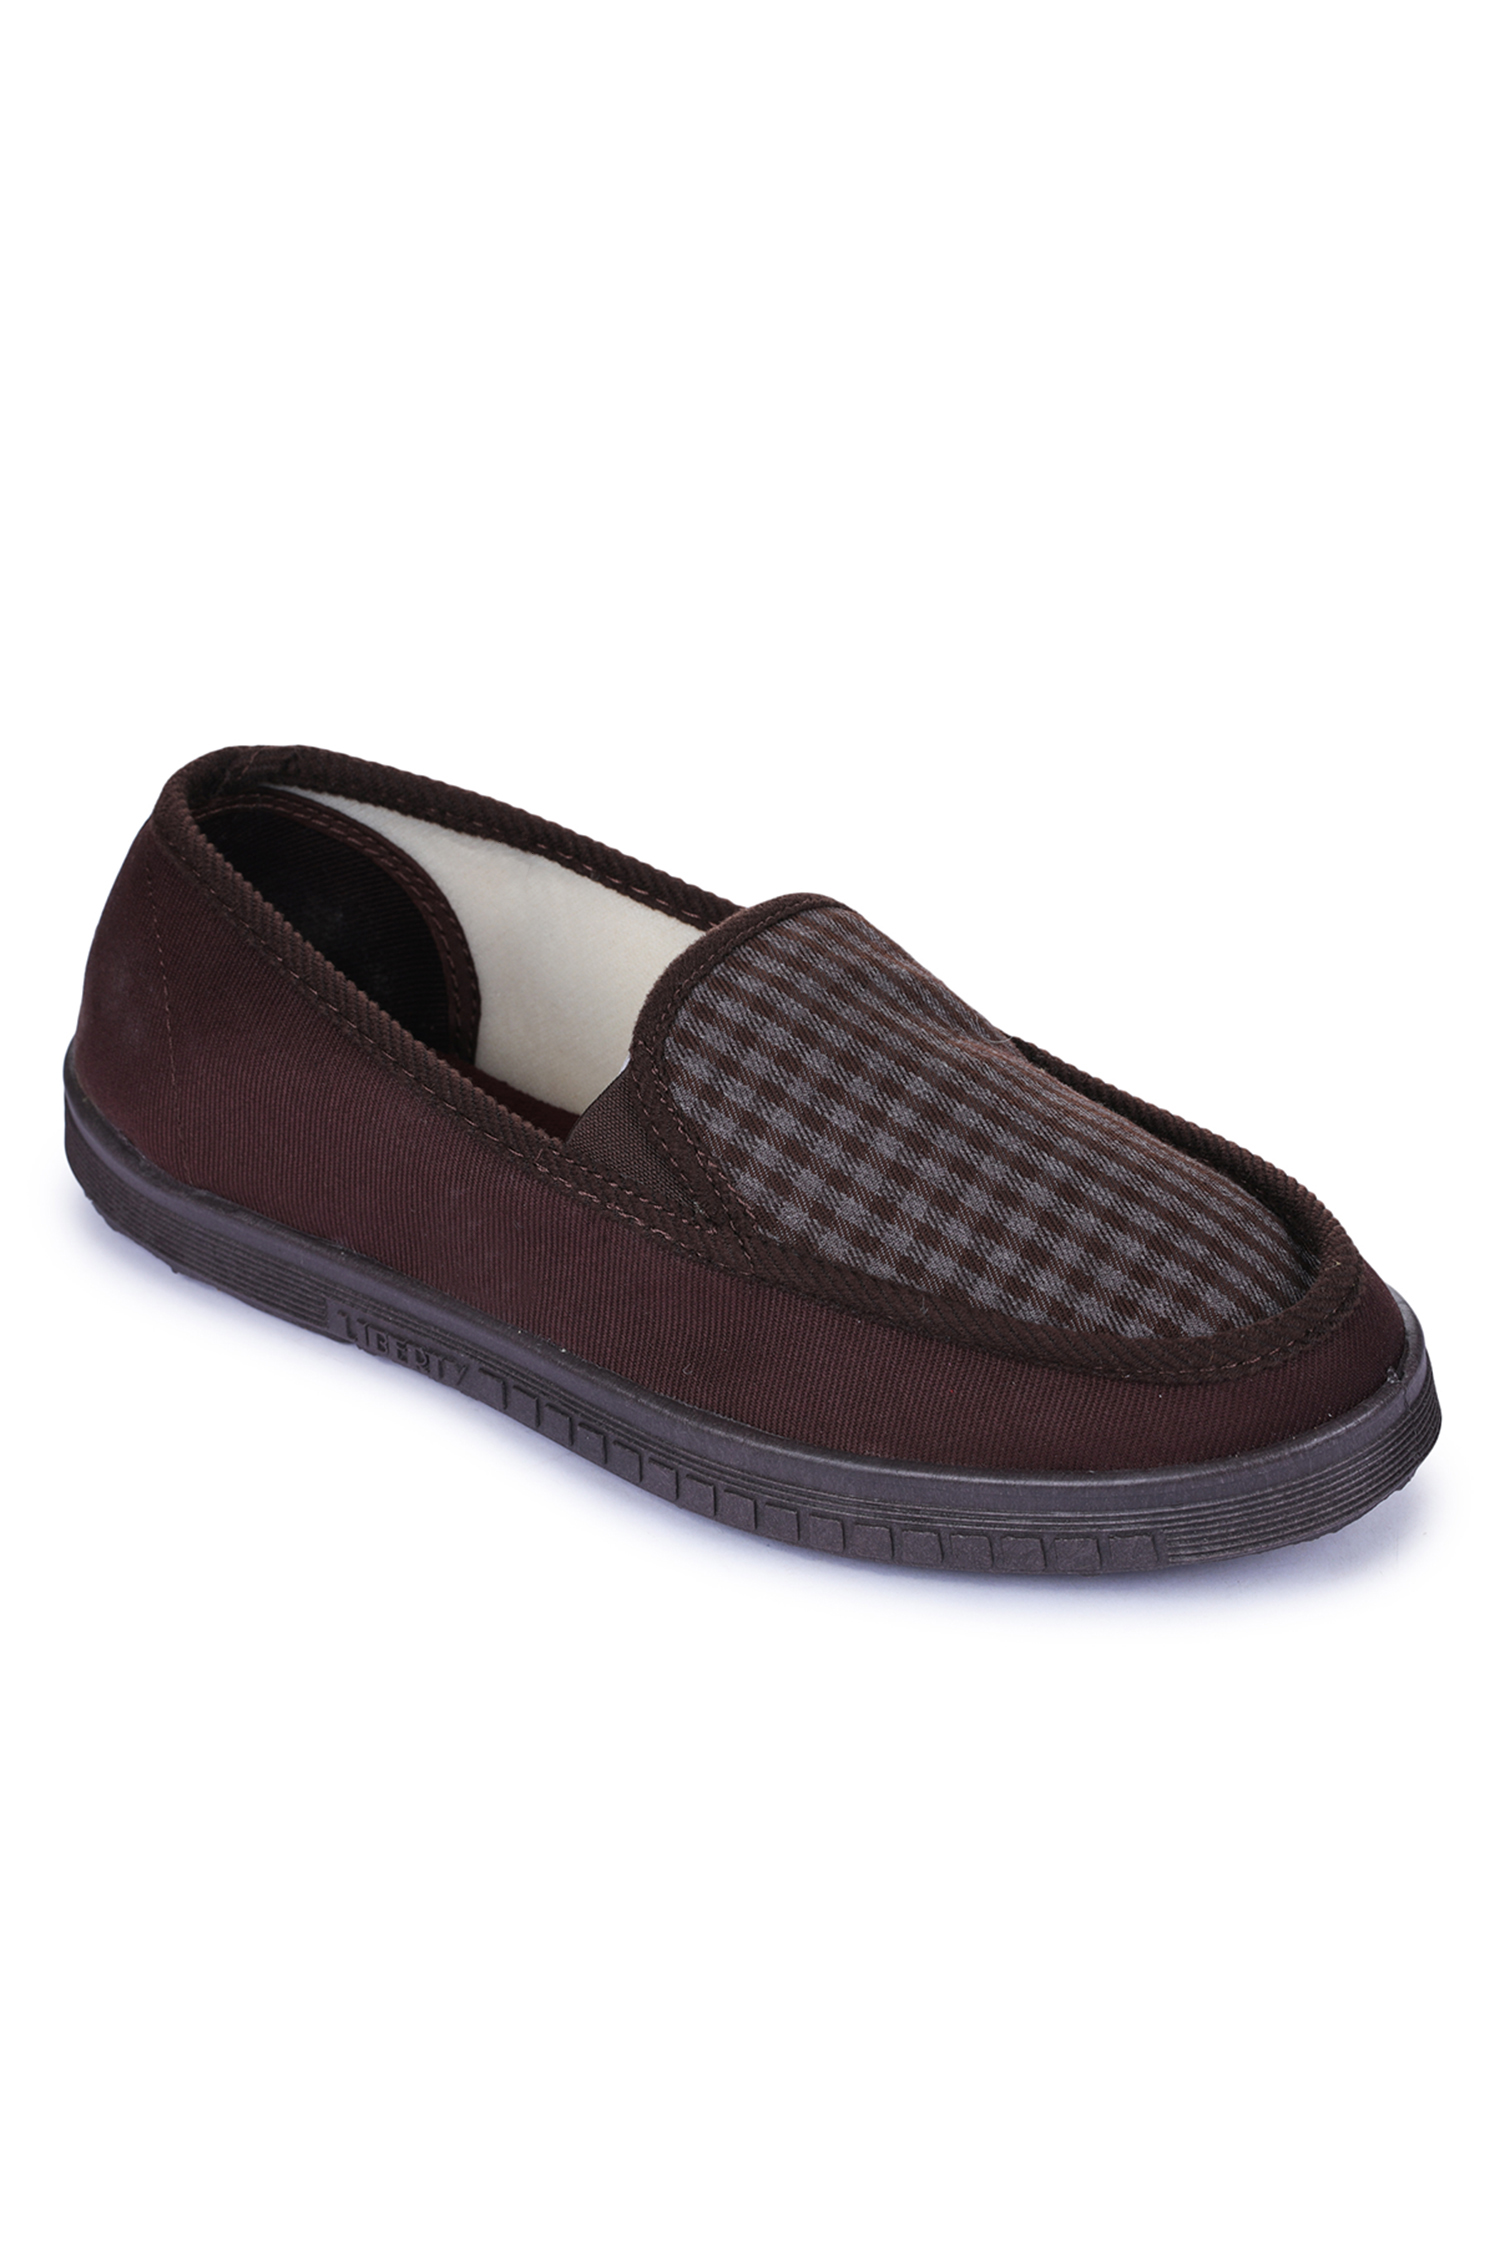 Liberty   Liberty Gliders Brown Casual Slip-ons WALKER-E_Brown For - Men